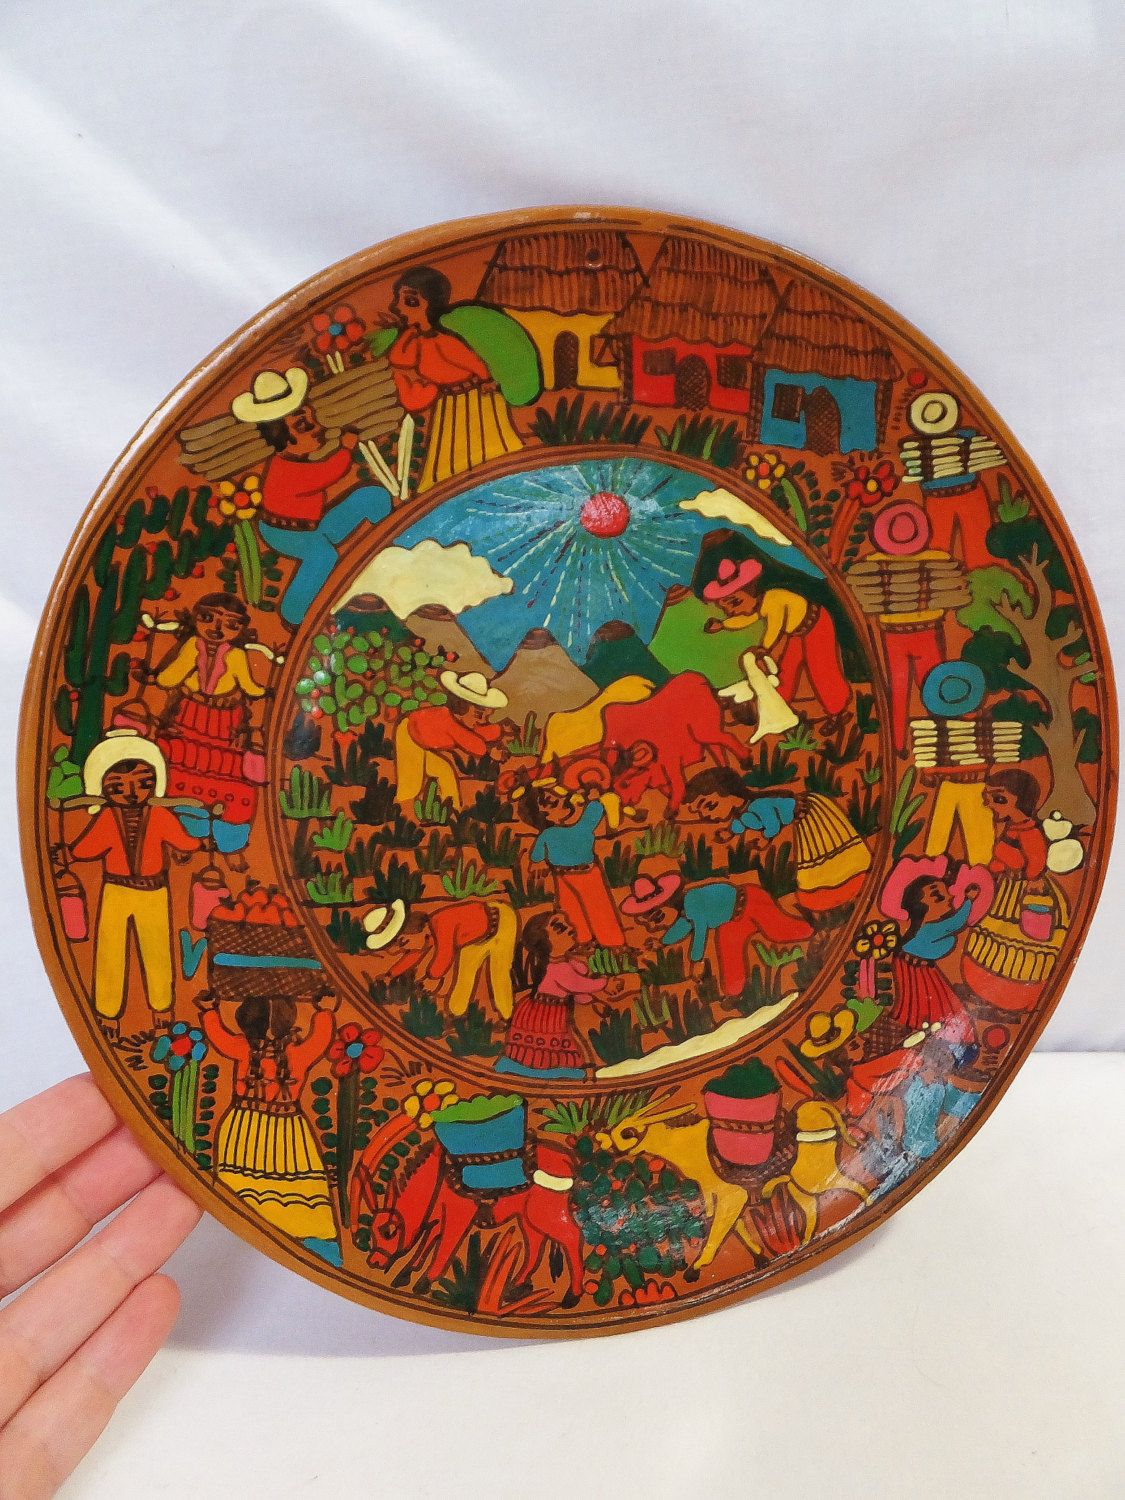 Vintage 1960 39 S Southwest Plate Decorative Ceramic Plate South Of The Border Decor Mexican Decor Mid Century Mex Hand Painted Plates Ceramic Decor Plate Art